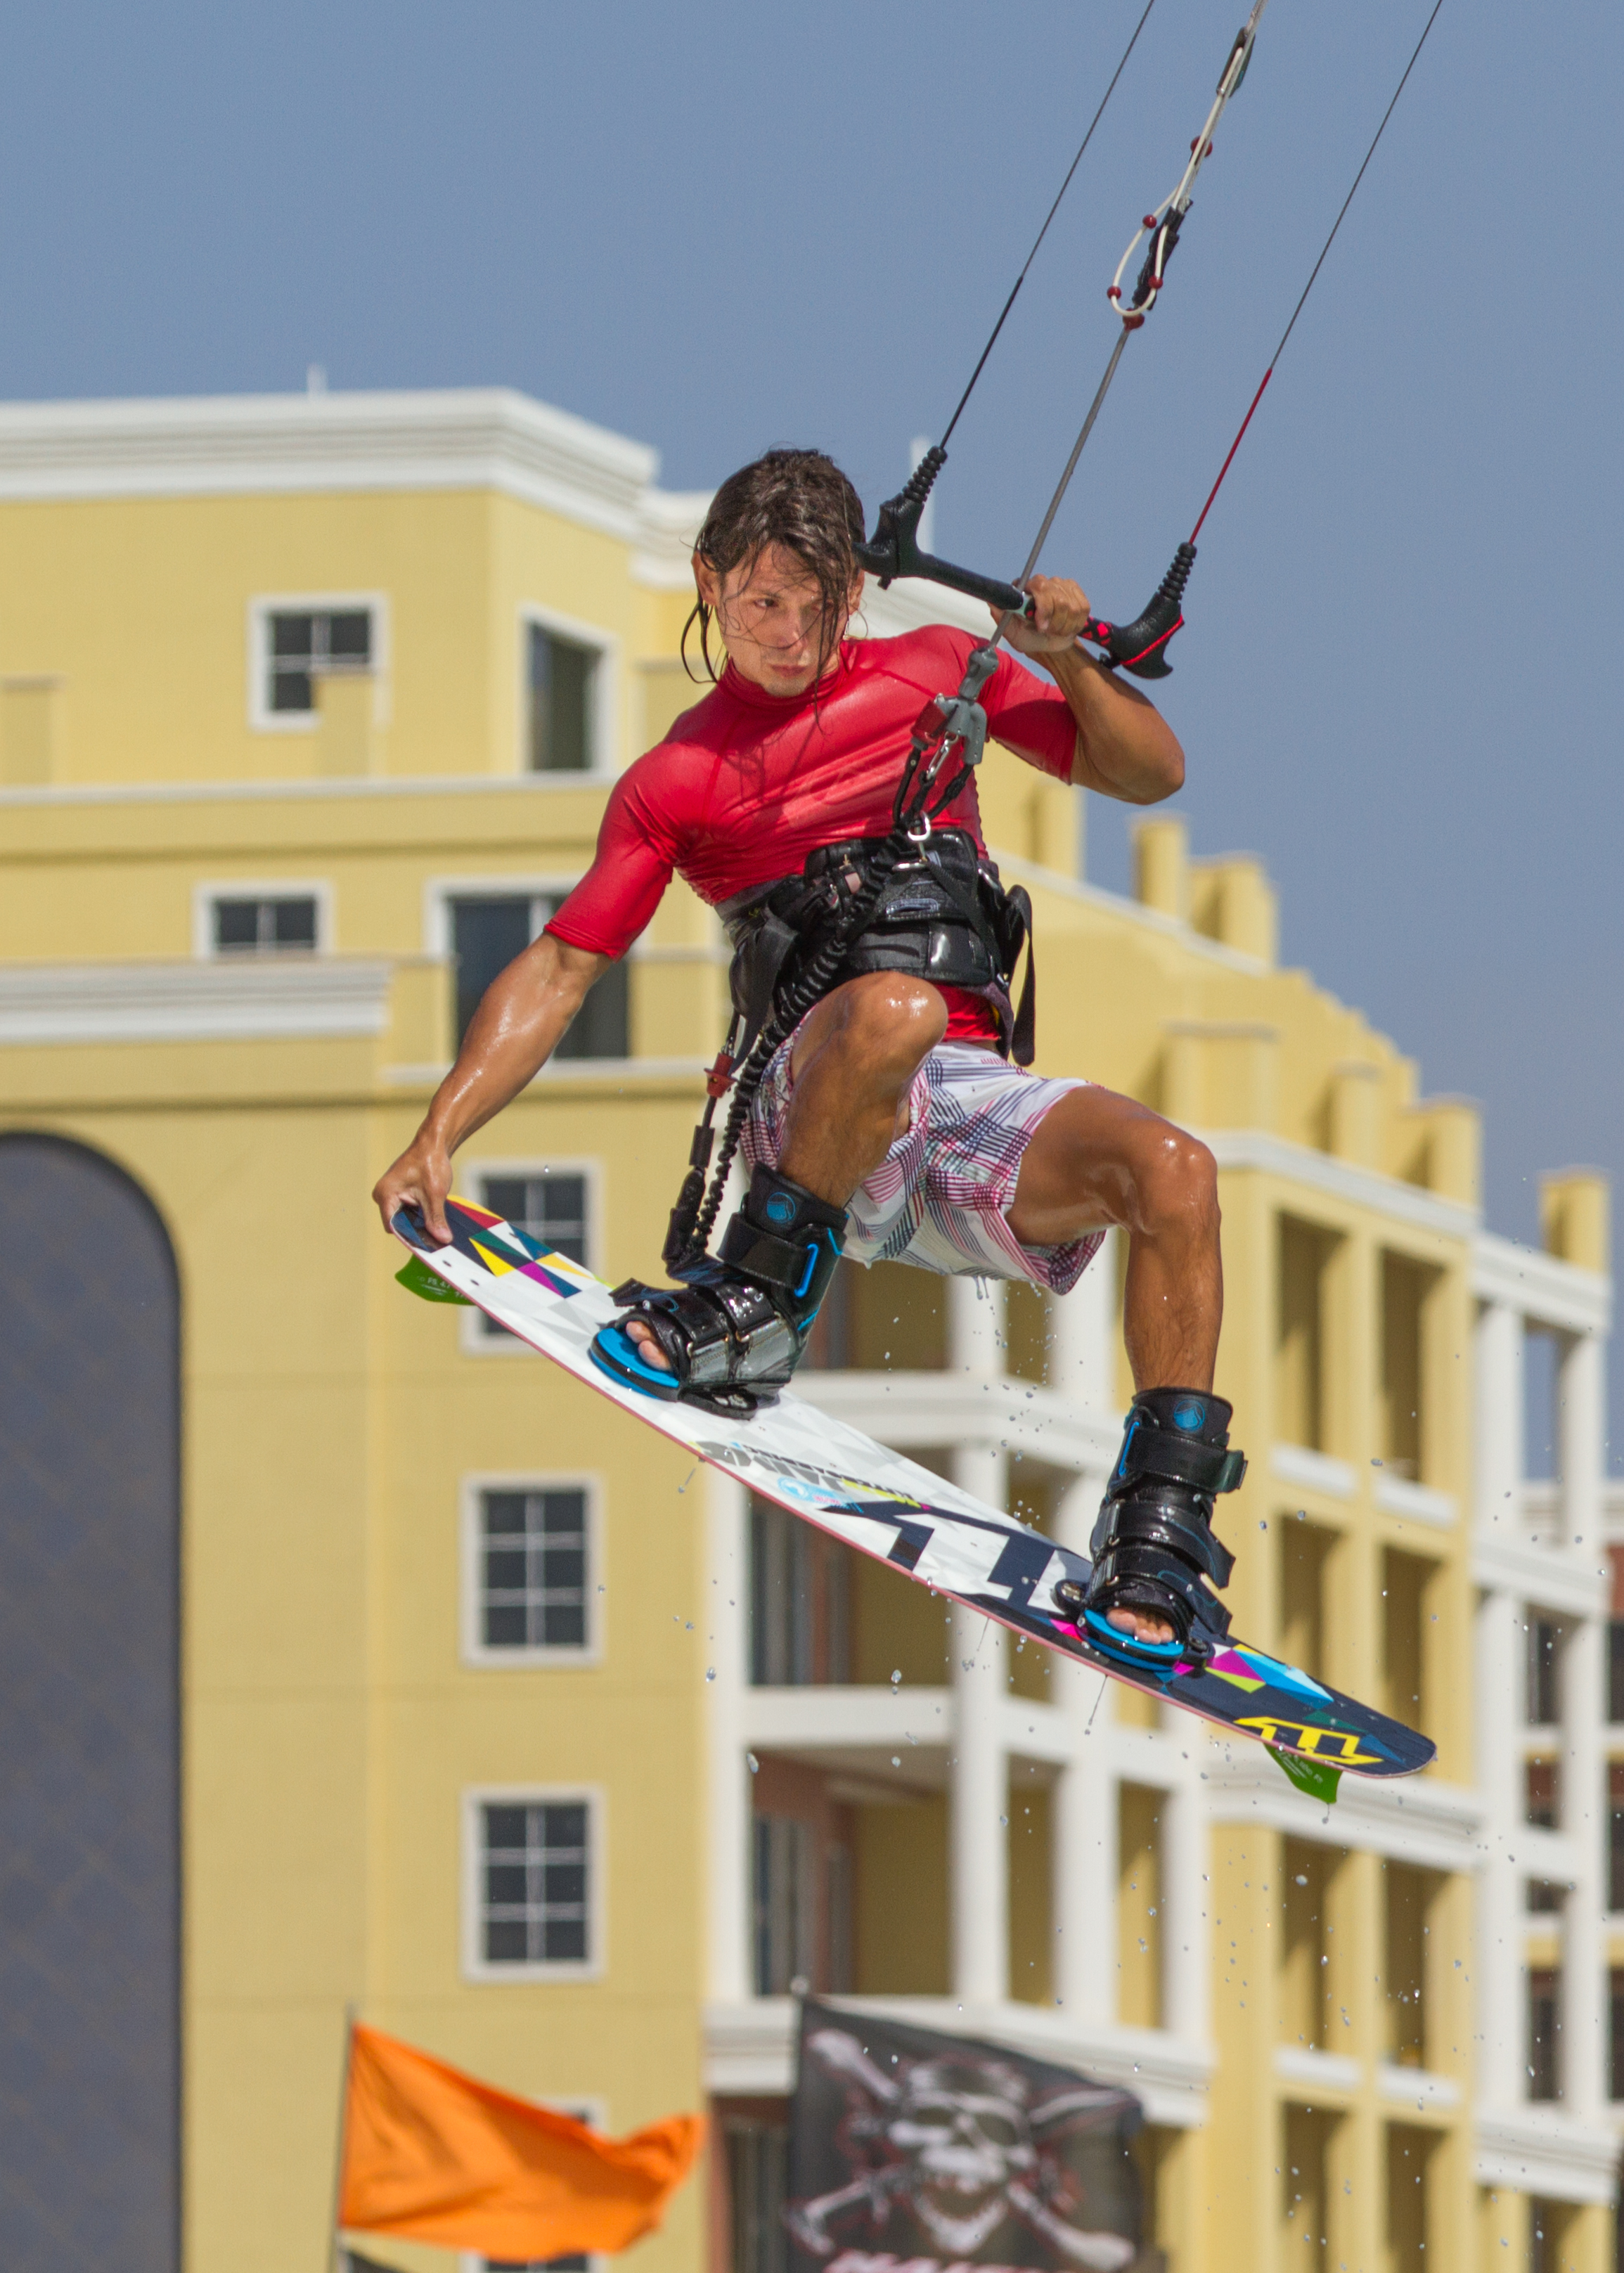 Very talented kitesurfer in Aruba